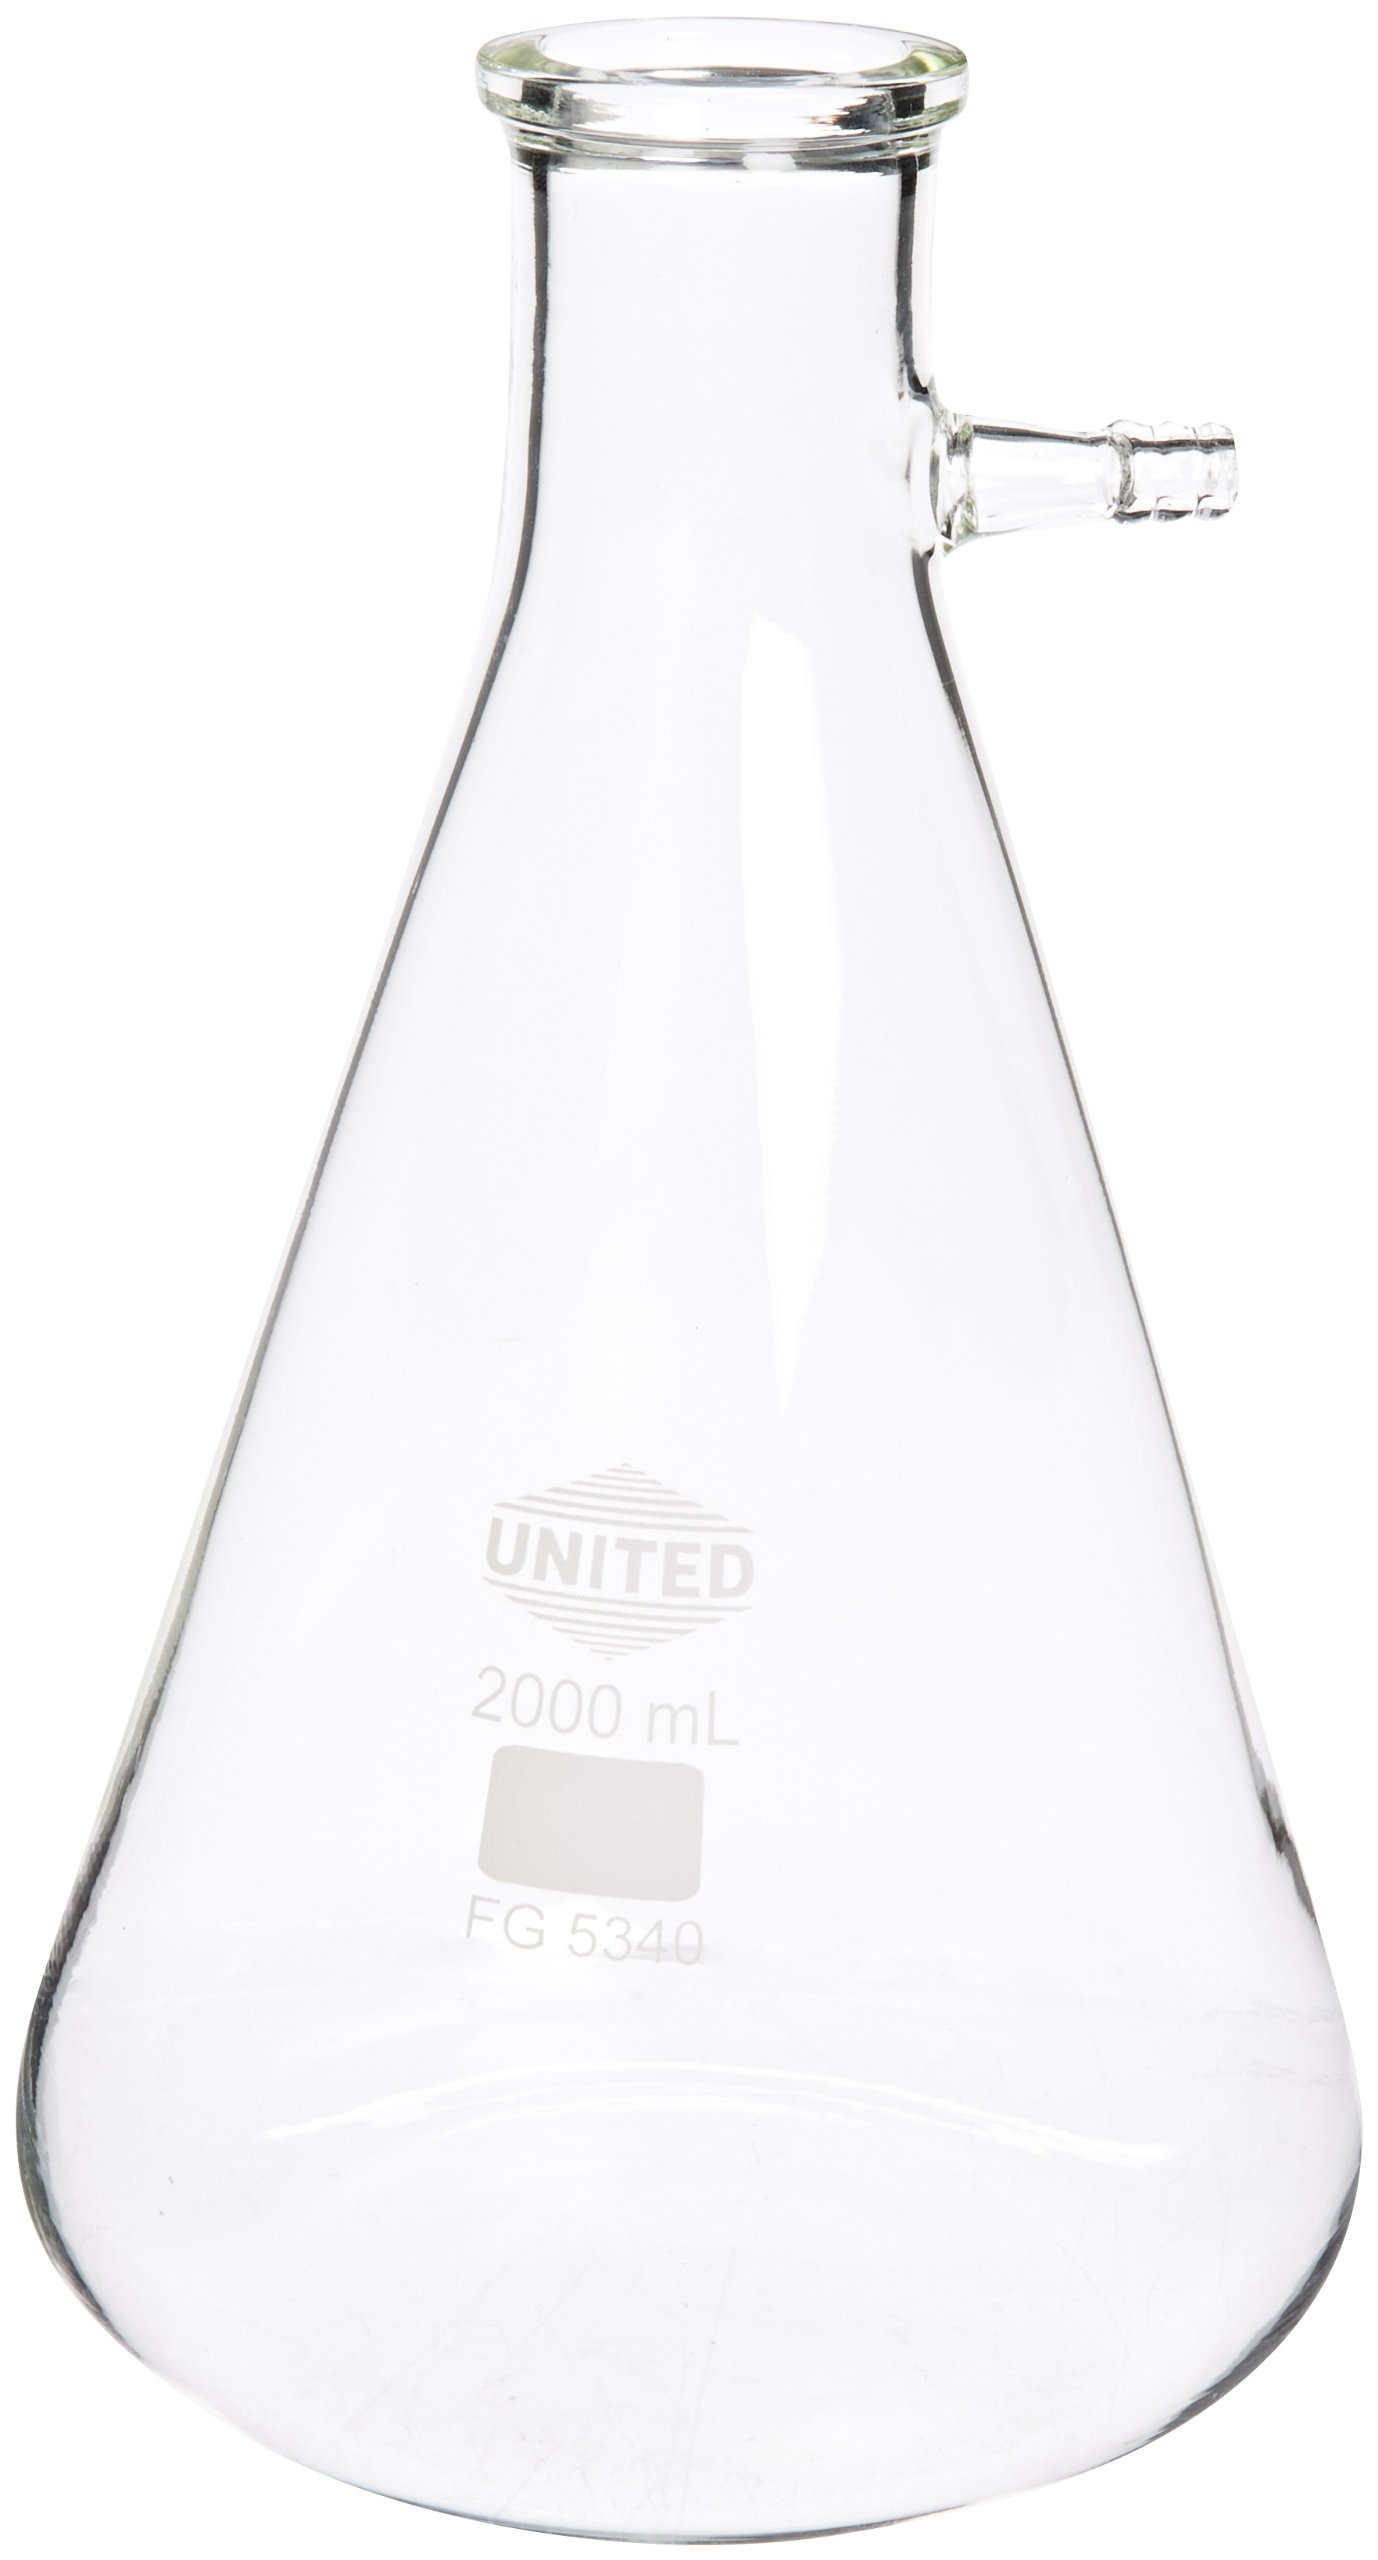 United Scientific FG5340-2000 Borosilicate Glass Heavy Wall Filtering Flask, Bolt Neck with Tubulation, 2000ml Capacity by United Scientific Supplies